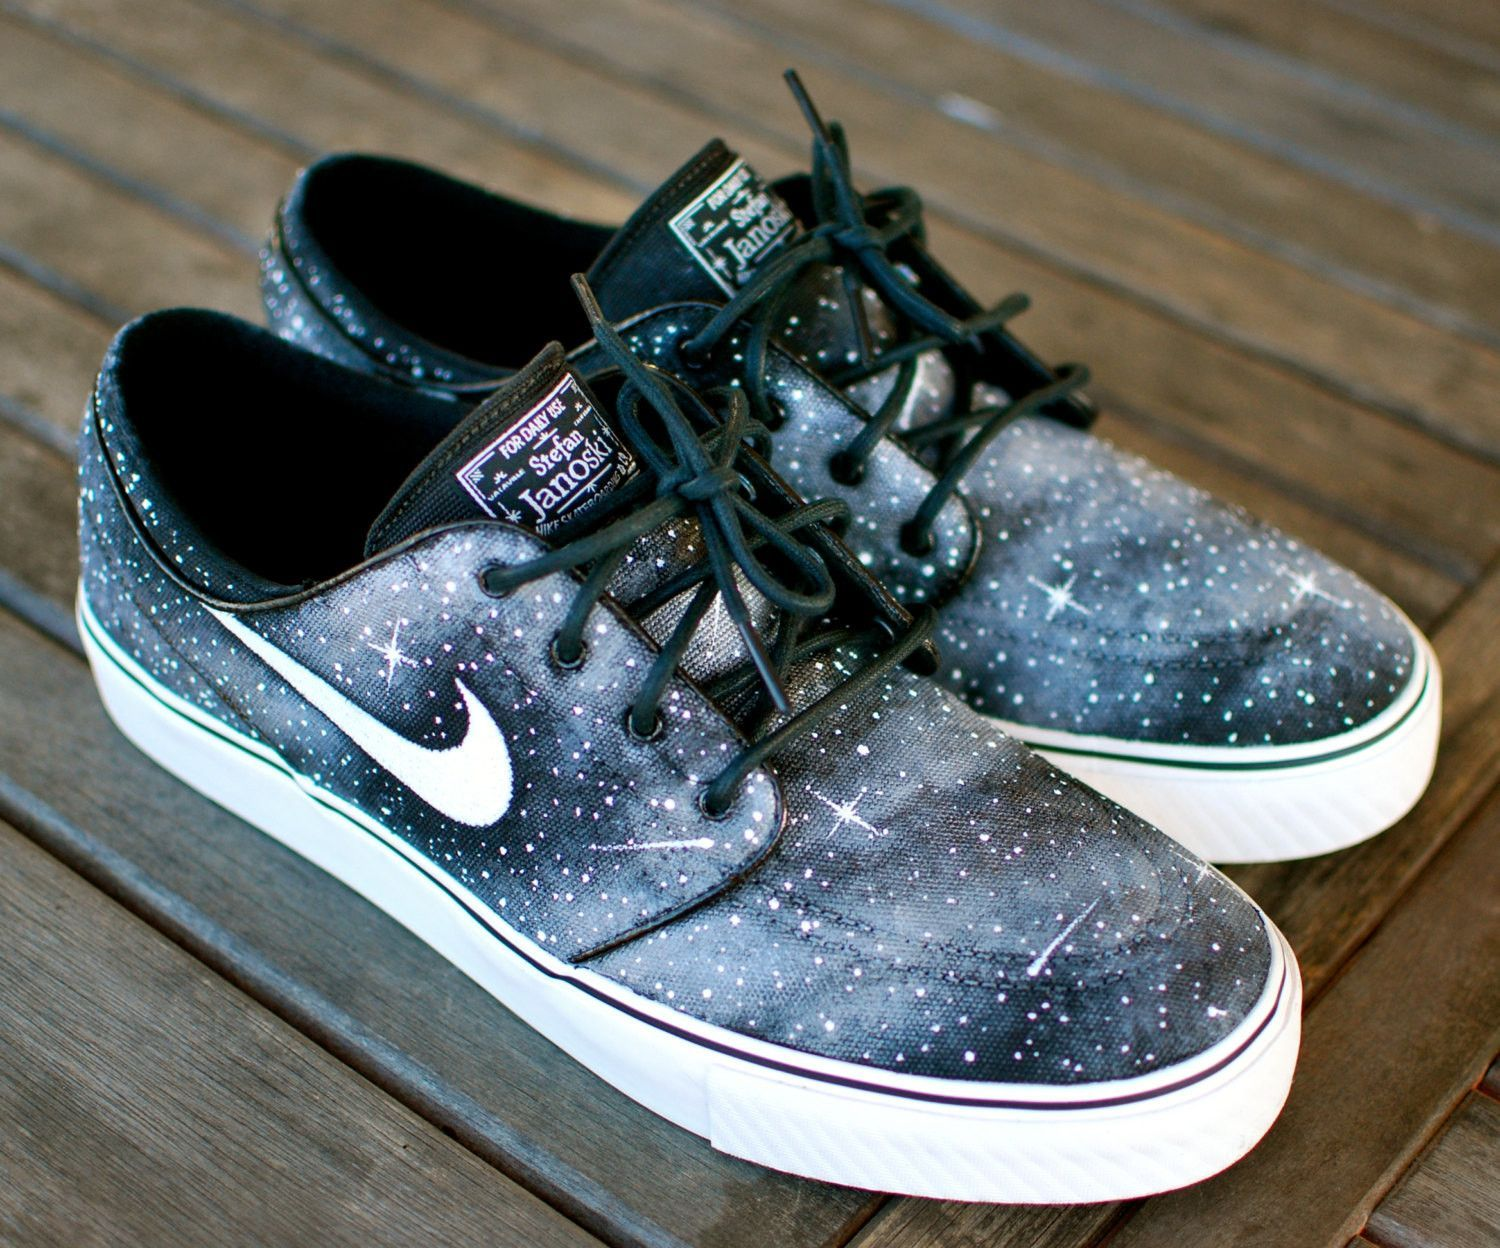 Custom Hand Painted Twilight Zone Black and White Galaxy Nike Stefan Janoski  Skate Shoes 41c2e9b684d9